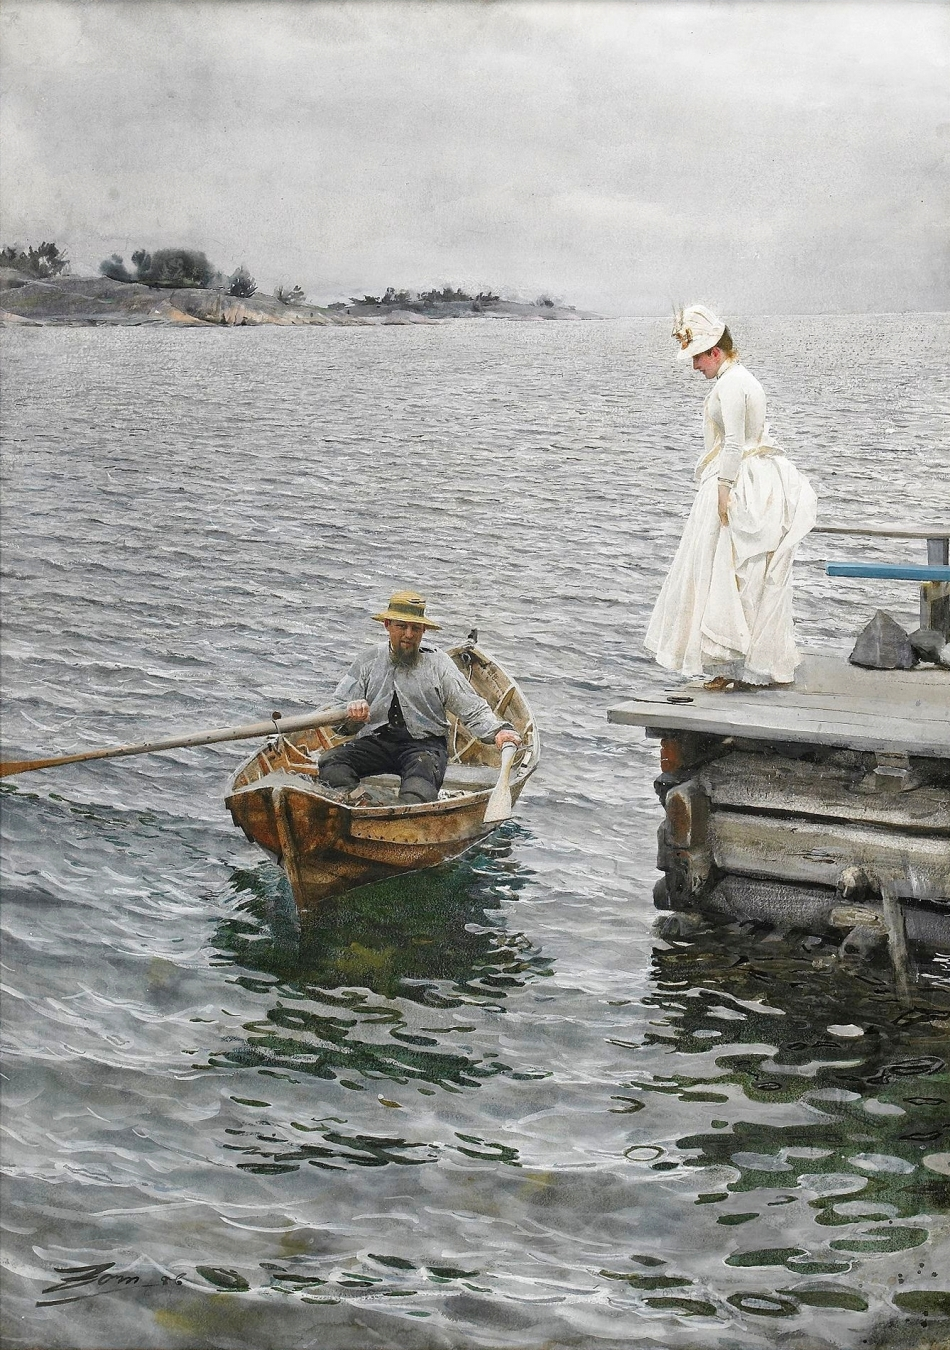 Anders Zorn – private collection. Title: Summer pleasure. Date: 1886. Materials: watercolor on paper. Dimensions: 76 x 54 cm. Source: https://commons.wikimedia.org/wiki/File:Sommarn%C3%B6je_(1886),_akvarell_av_Anders_Zorn.jpg. I have changed the contrast of the original photo.